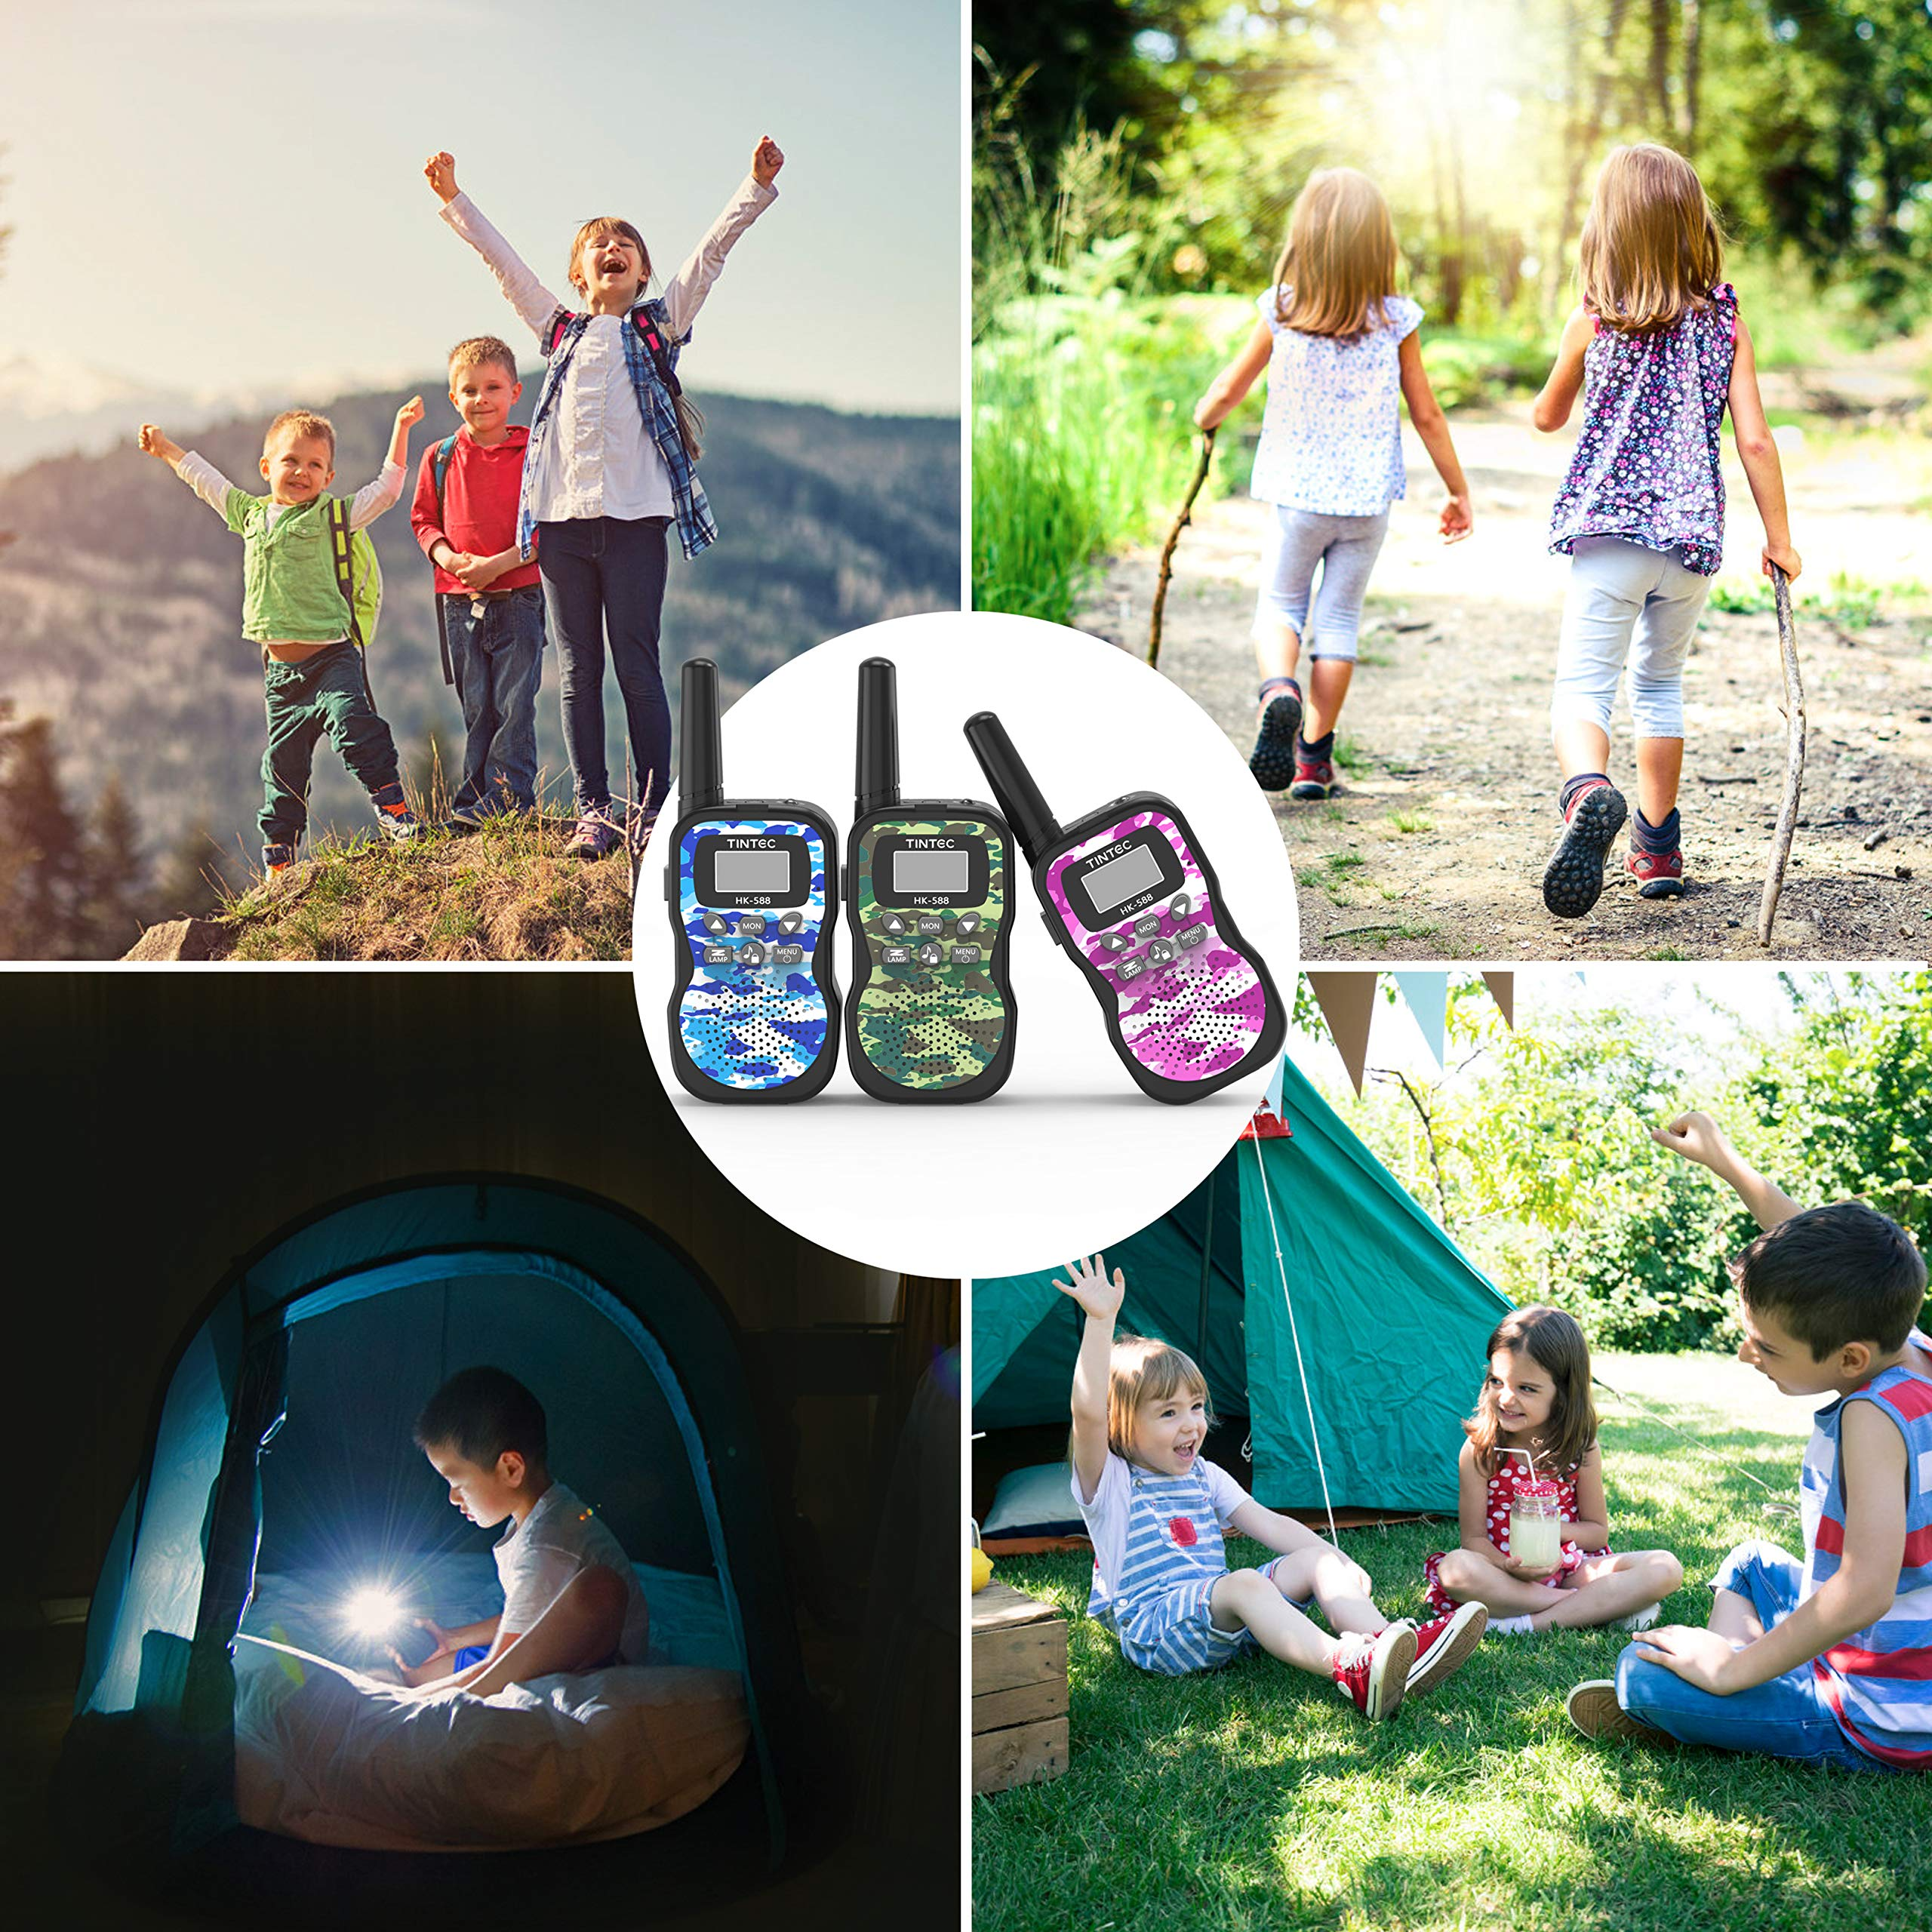 Tintec Walkie Talkies 3 Pack, Upgraded Version Camouflage Exterior 22 Channels 2 Way Radio Toy with Backlit LCD Flashlight, 3 Miles Range for Kids, Outdoor Adventures, Camping, Hiking by Tintec (Image #7)